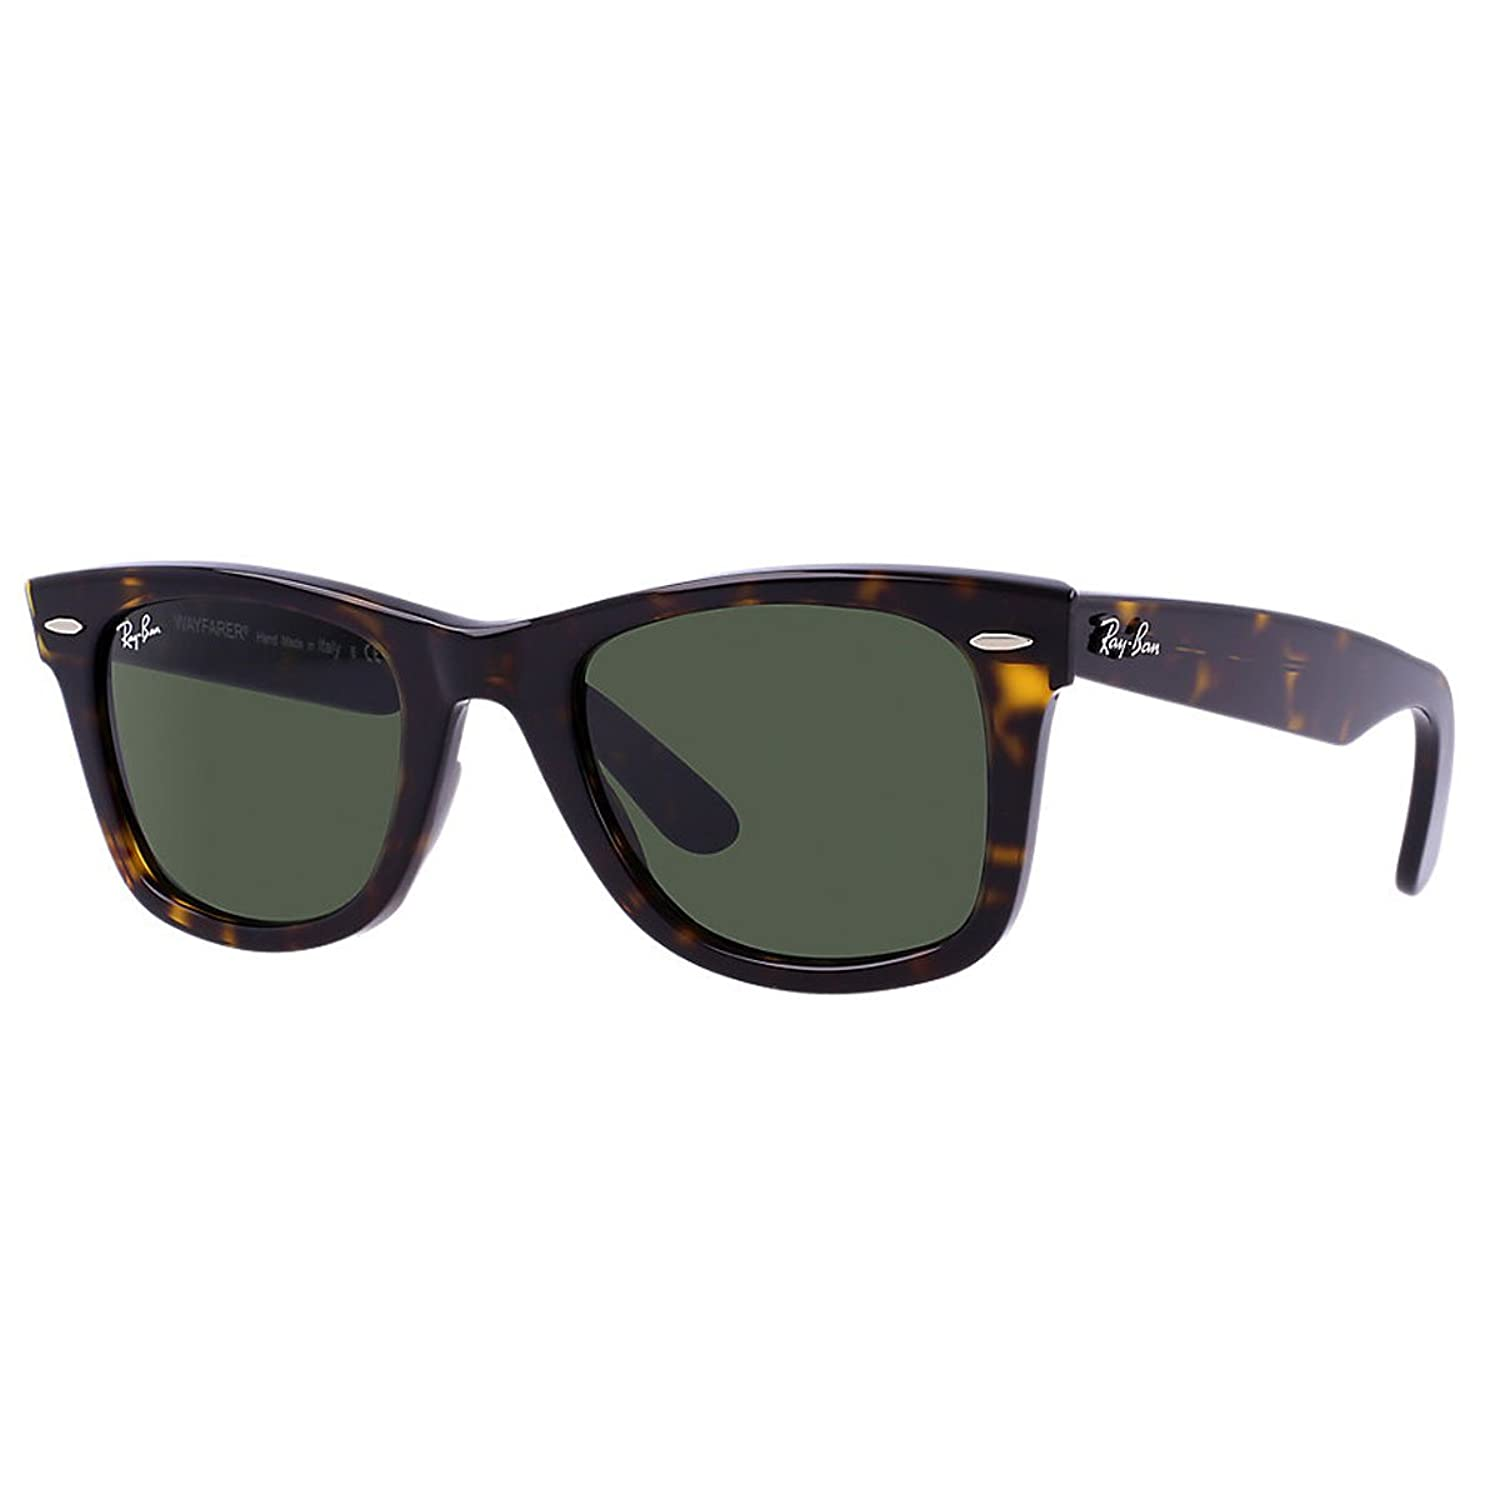 New Unisex Sunglasses Ray-Ban RB2140 Original Wayfarer 902 B001GNBJO6  Brown